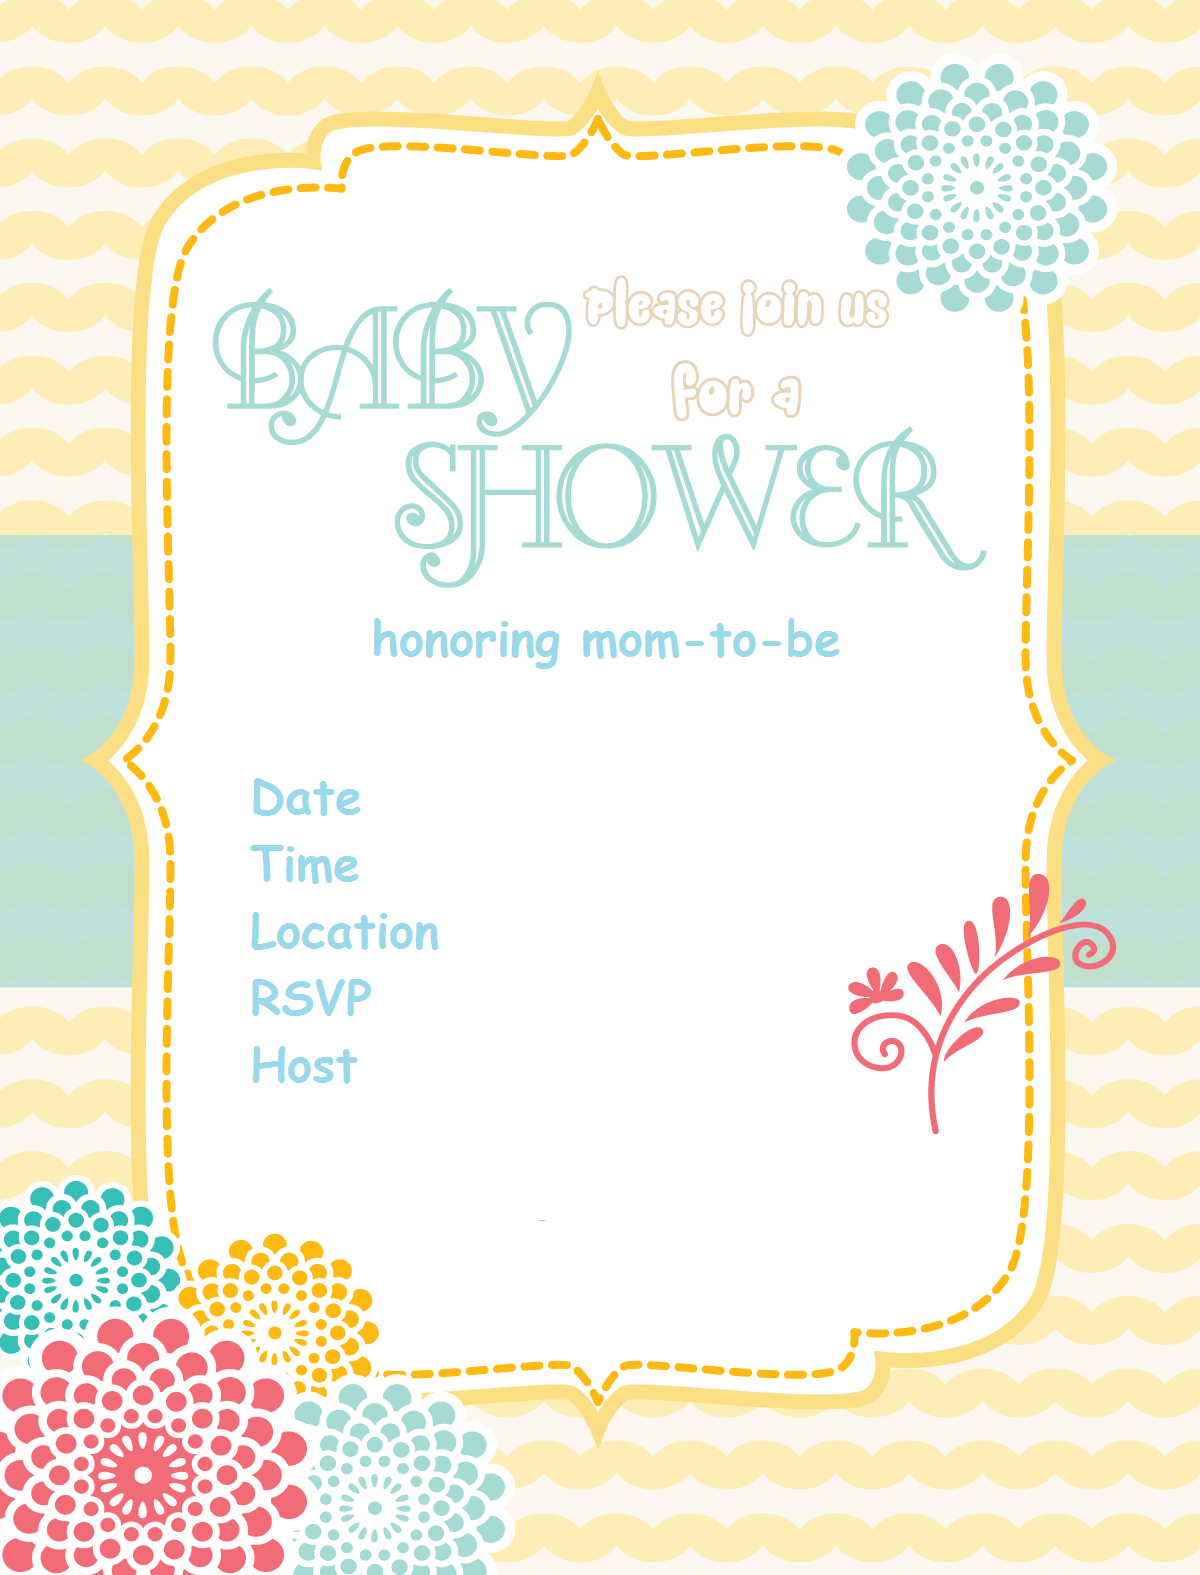 Free Printable Baby Shower Invitations - Baby Shower Ideas - Themes - Free Printable Baby Registry Cards